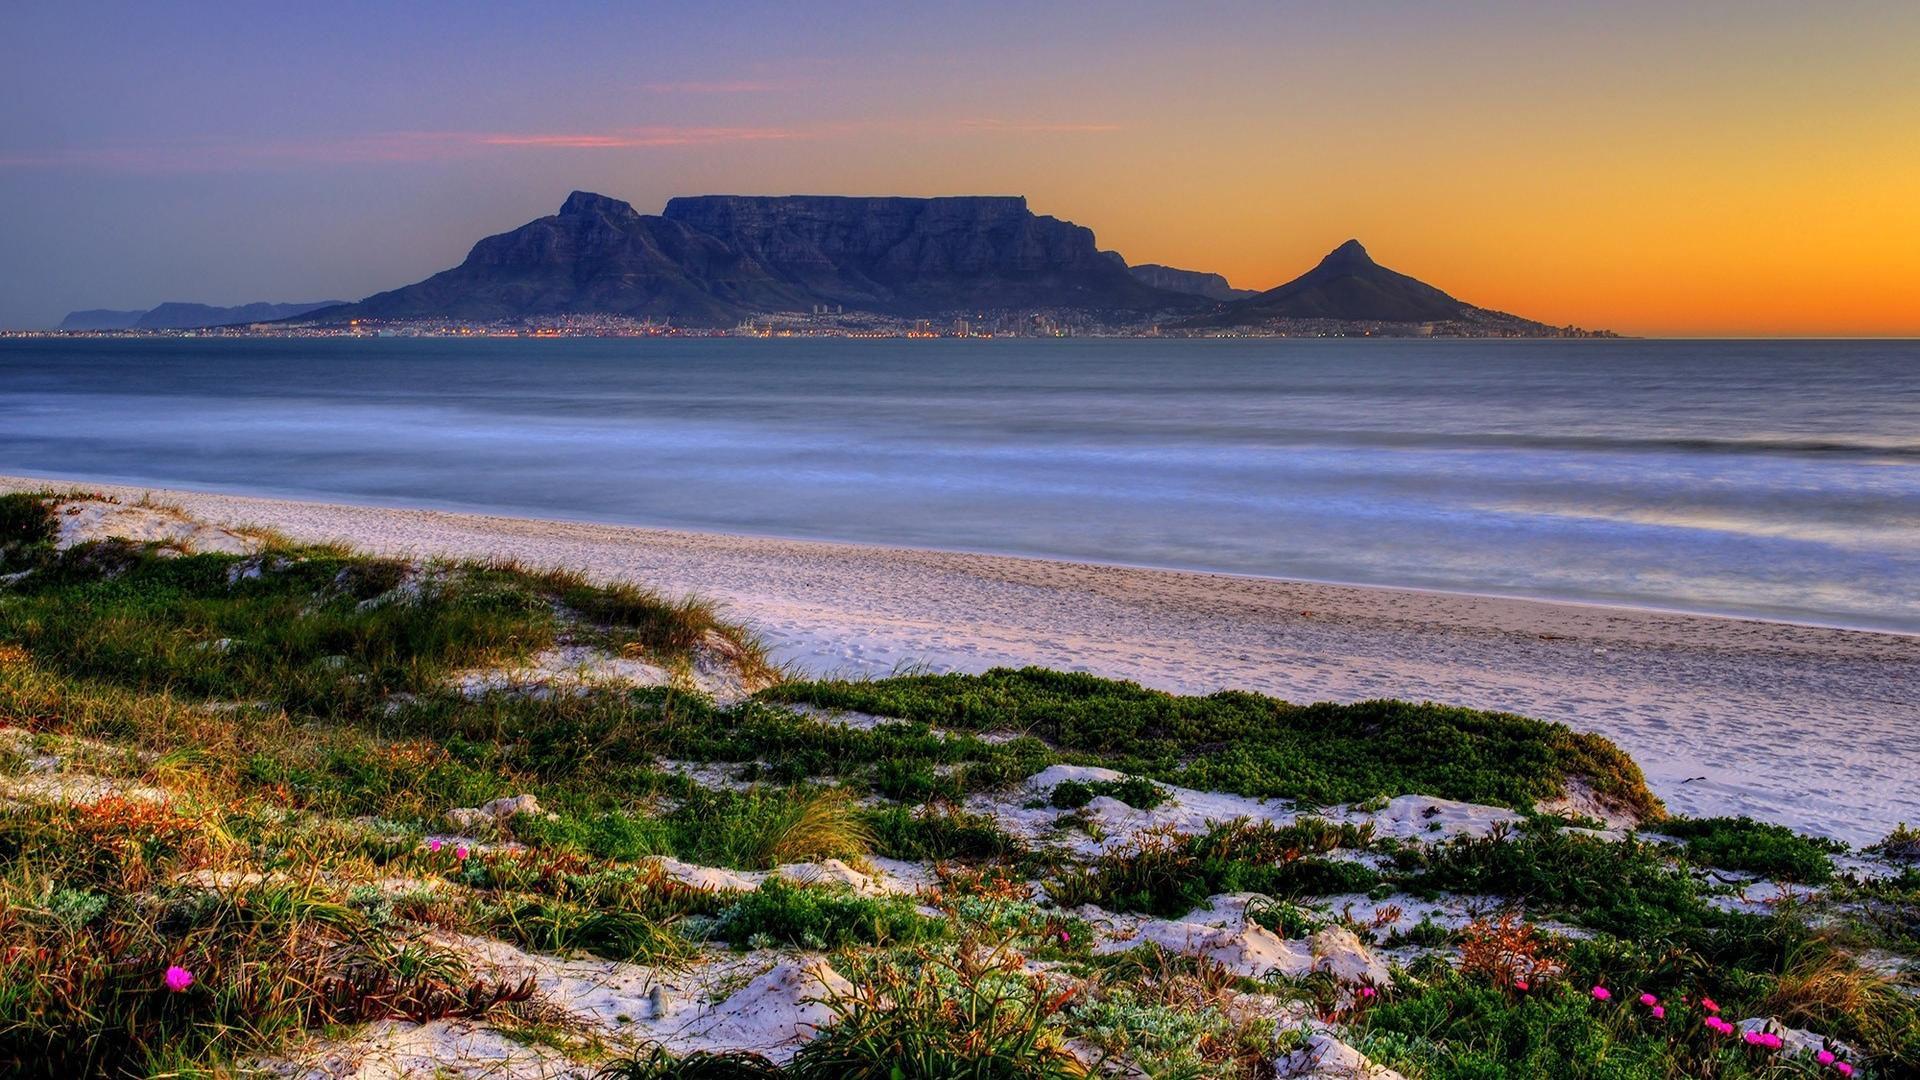 Cape town south africa table mountain landscapes nature wallpaper 1920x1080